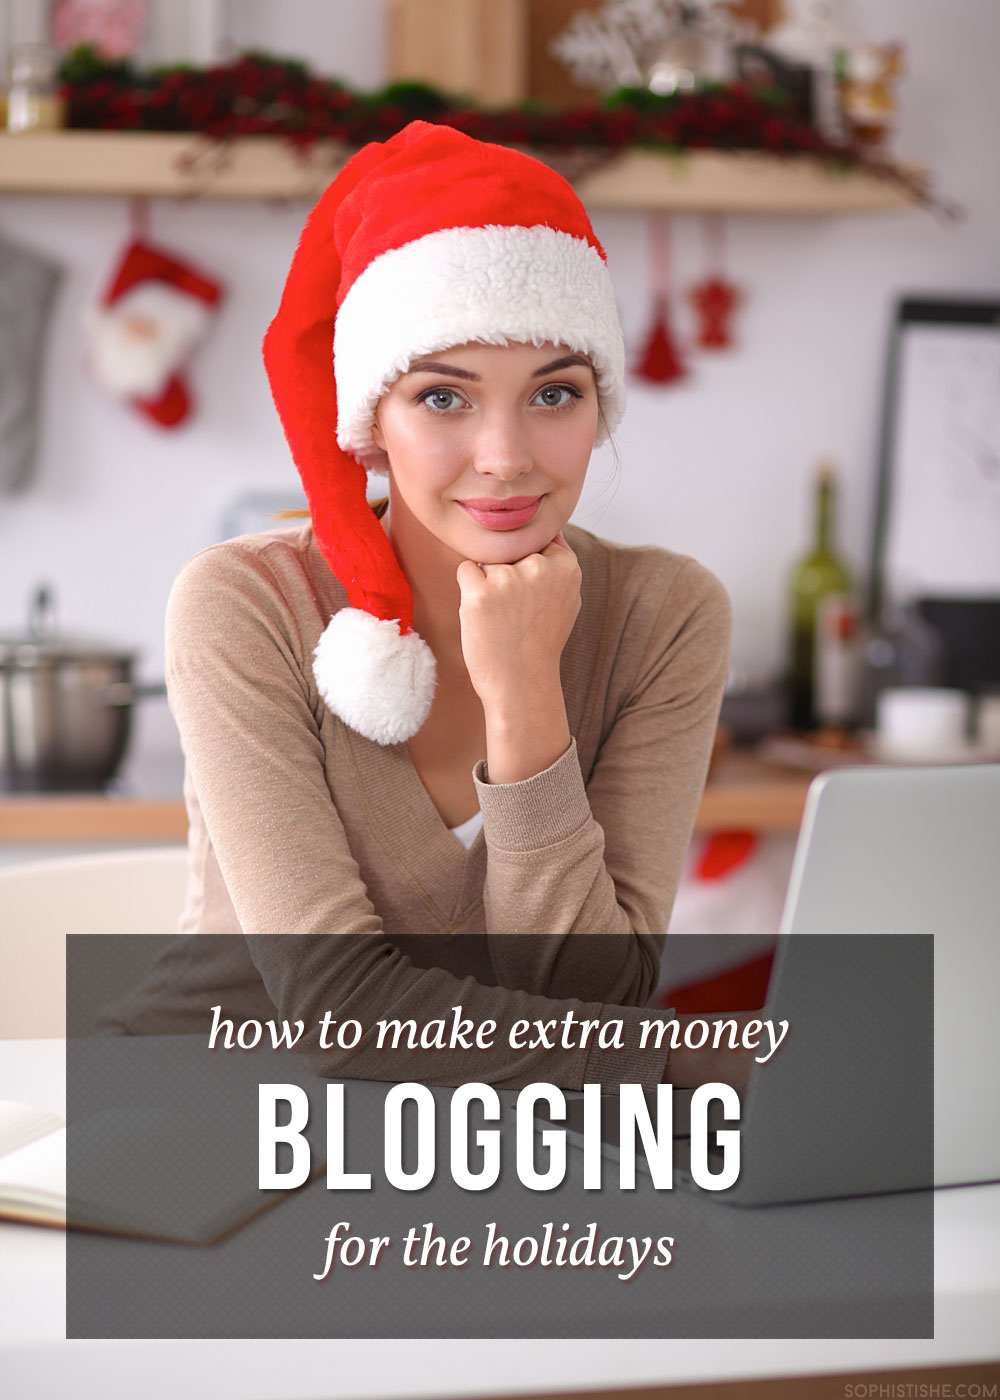 How to Make Extra Money with Your Blog for the Holidays